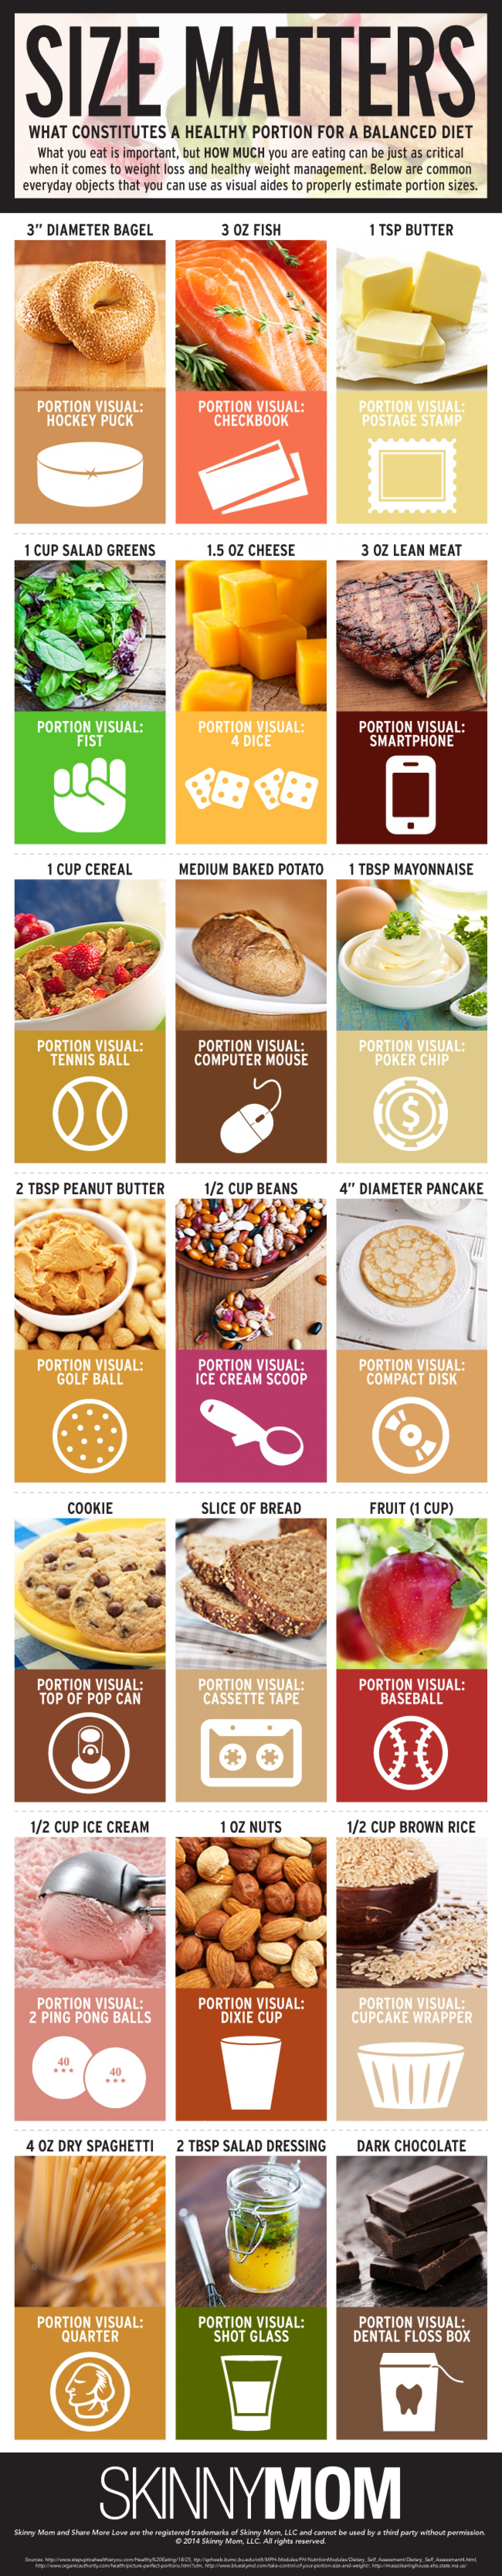 Helpful Tips For Appropriate Portion Sizes